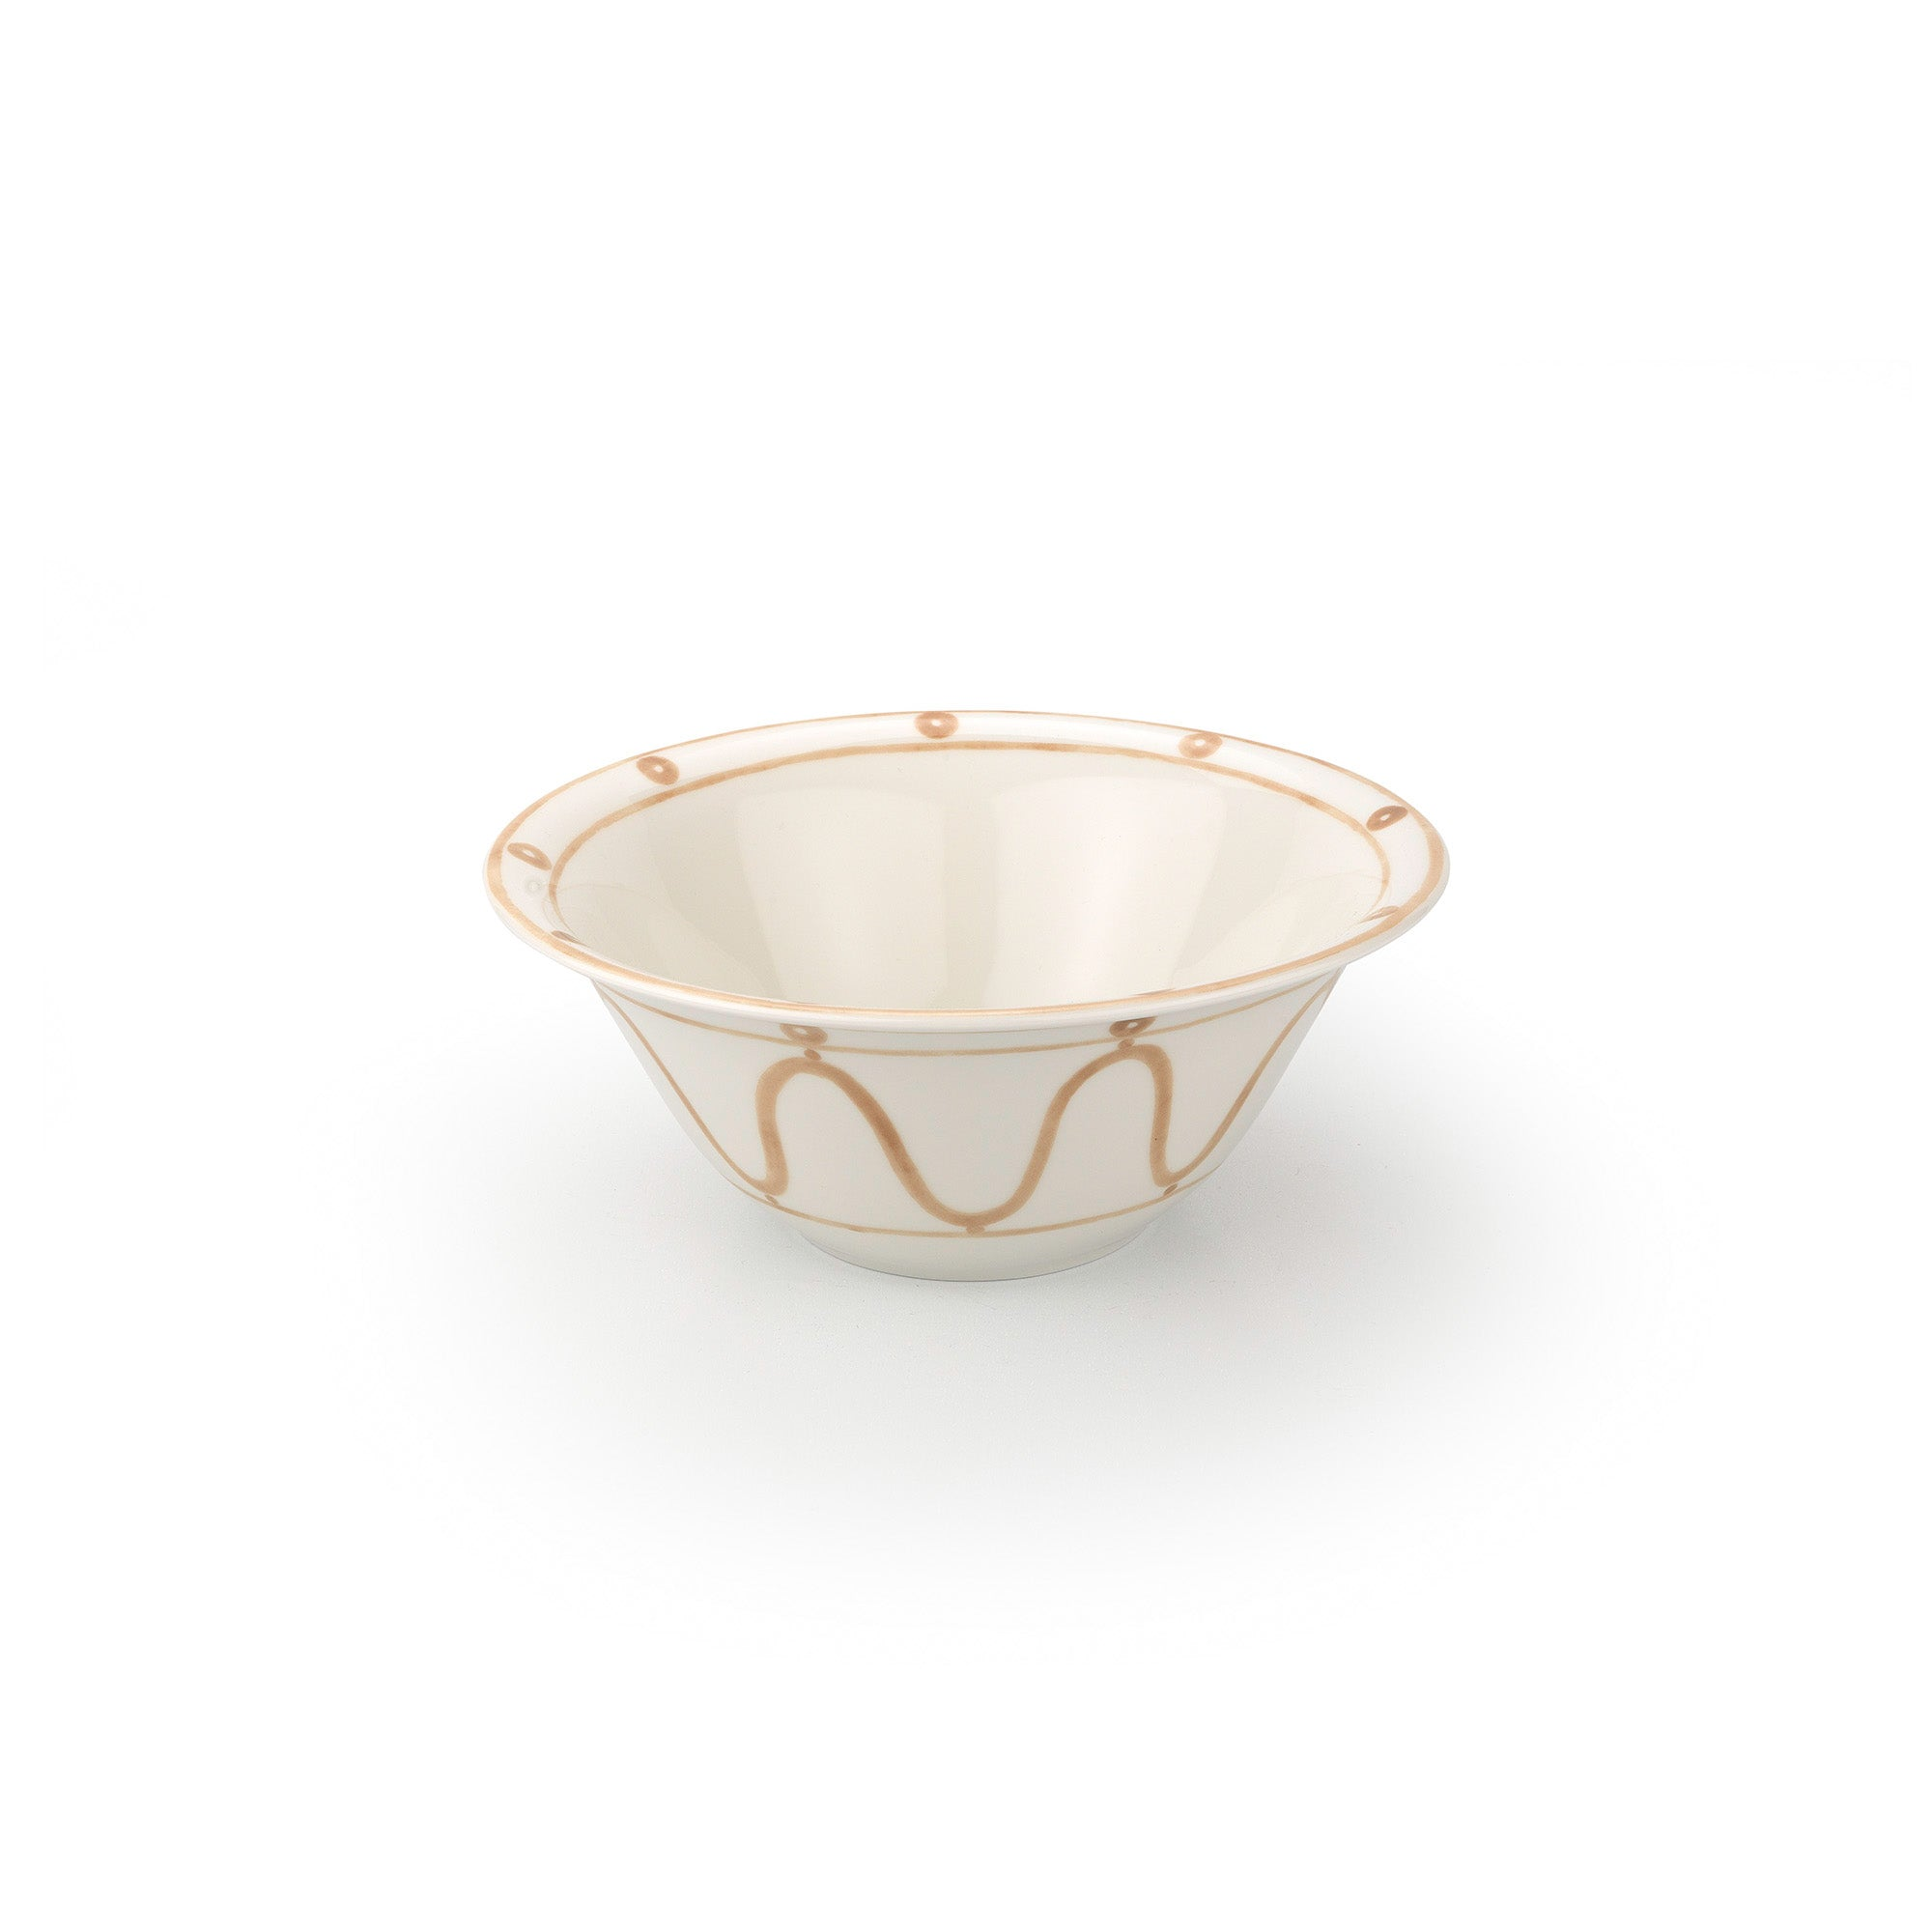 The Serenity Salad Bowl